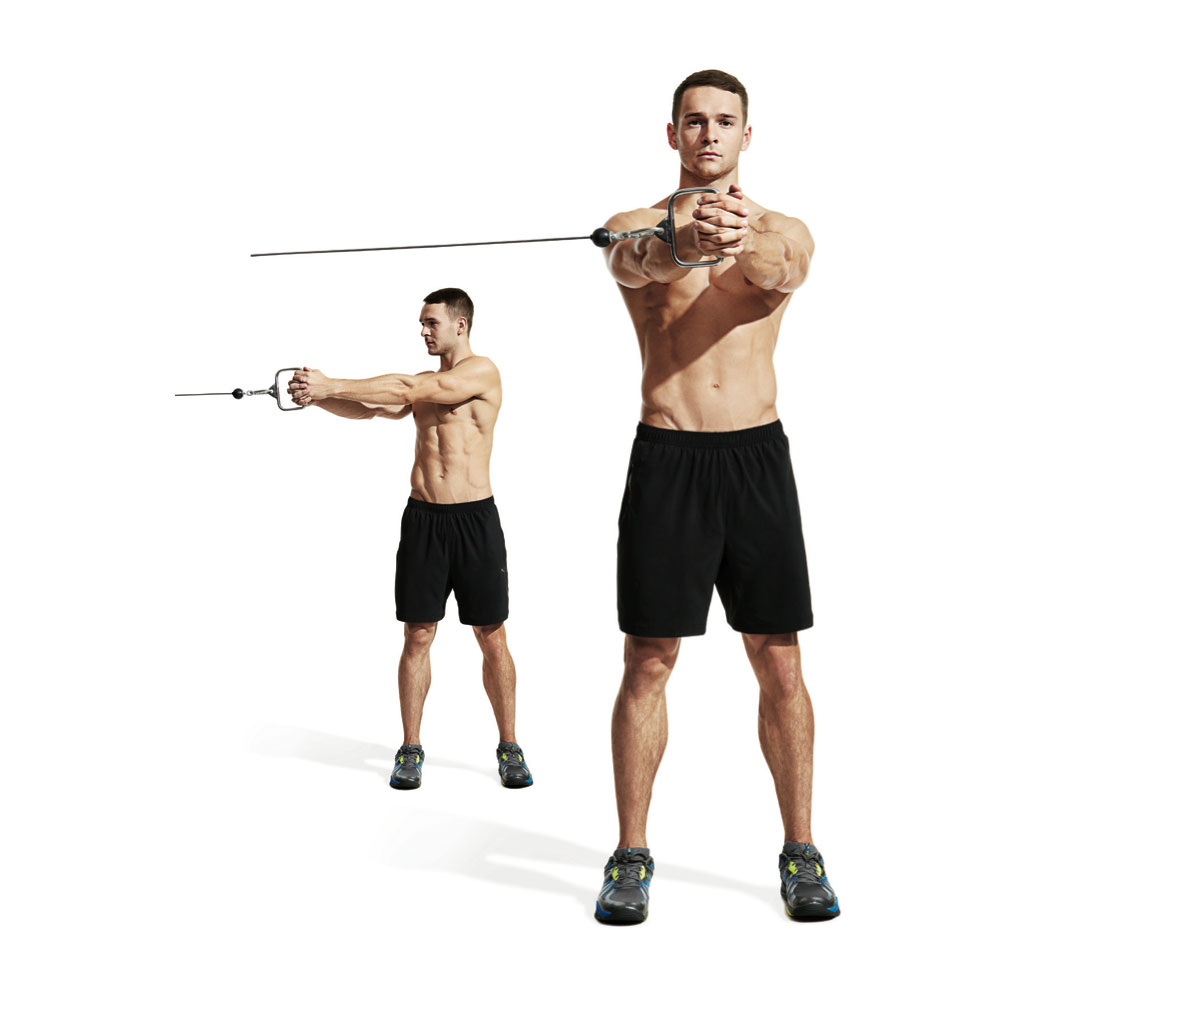 Six Pack Abs Workout 10 Cable Exercises For Your Core